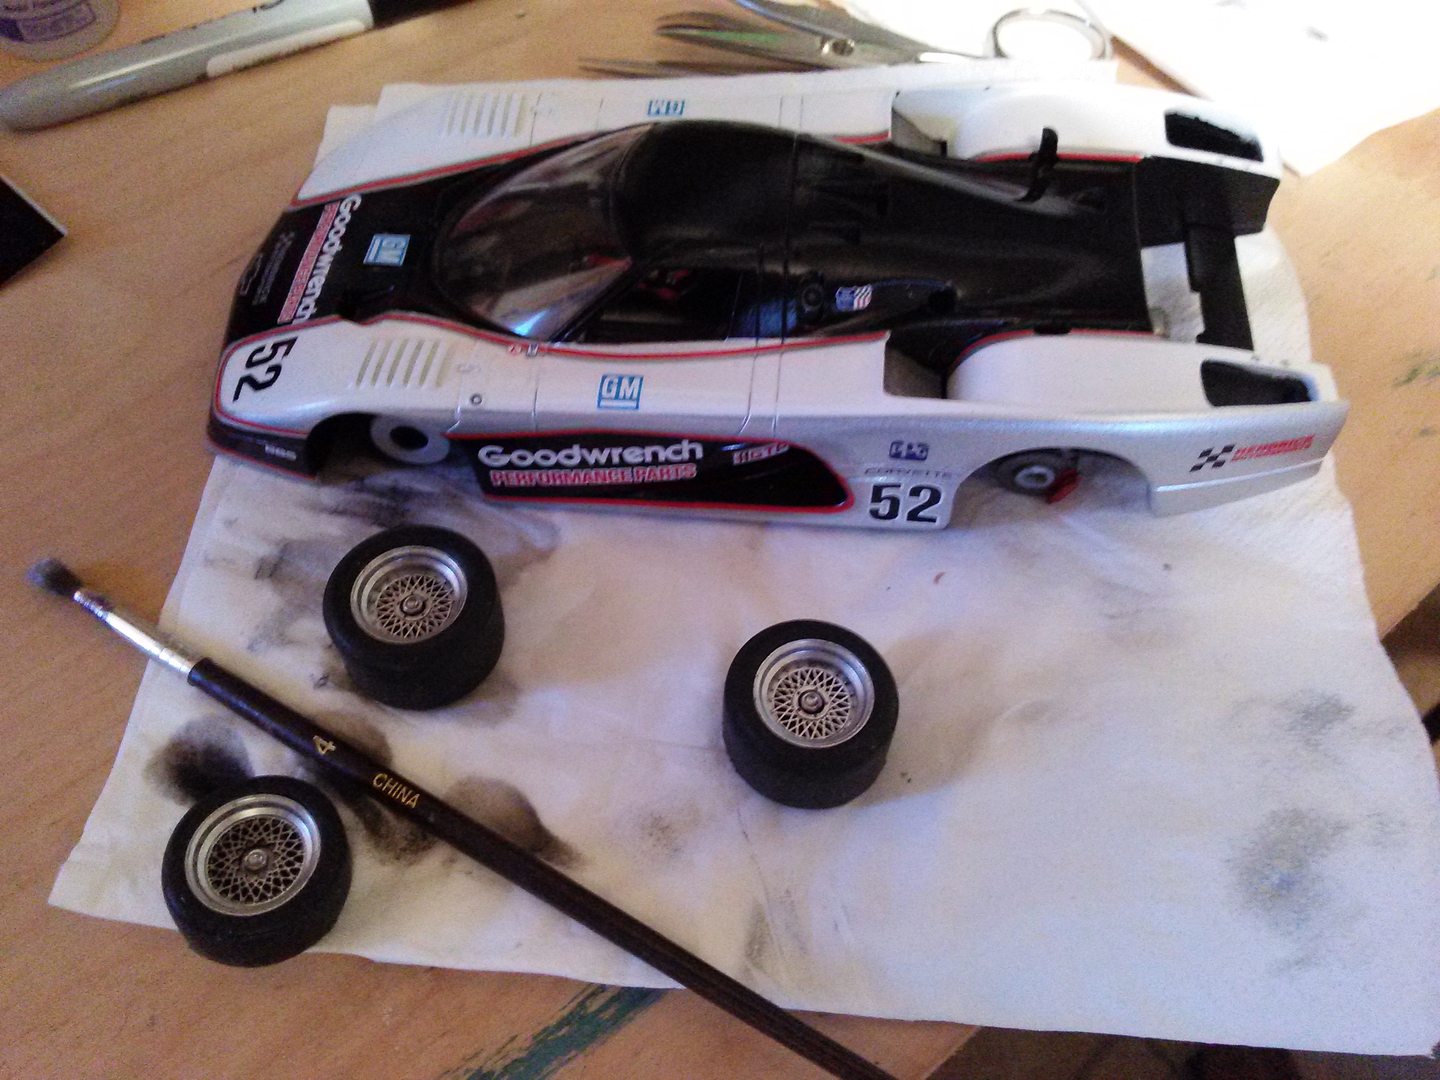 Model building projects and how-to articles of Tim Bongard